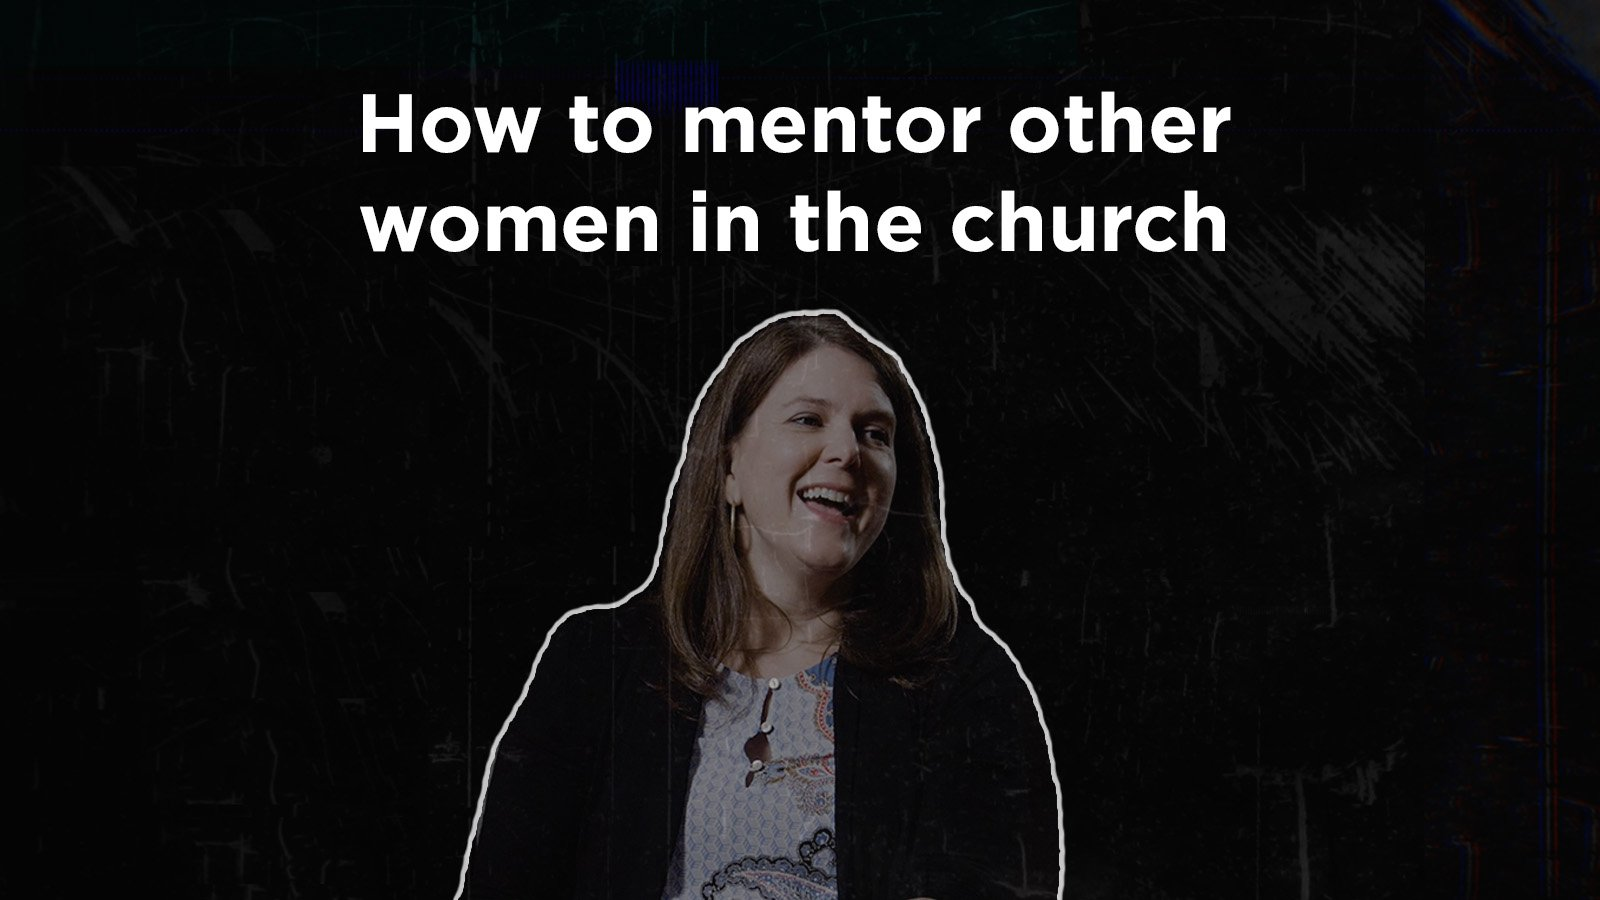 New video: @melissabkruger provides insights for women who seek out mentoring relationships organically as well as churches that want to encourage mentorship among women systematically. https://t.co/2Gx3Rxbkqi